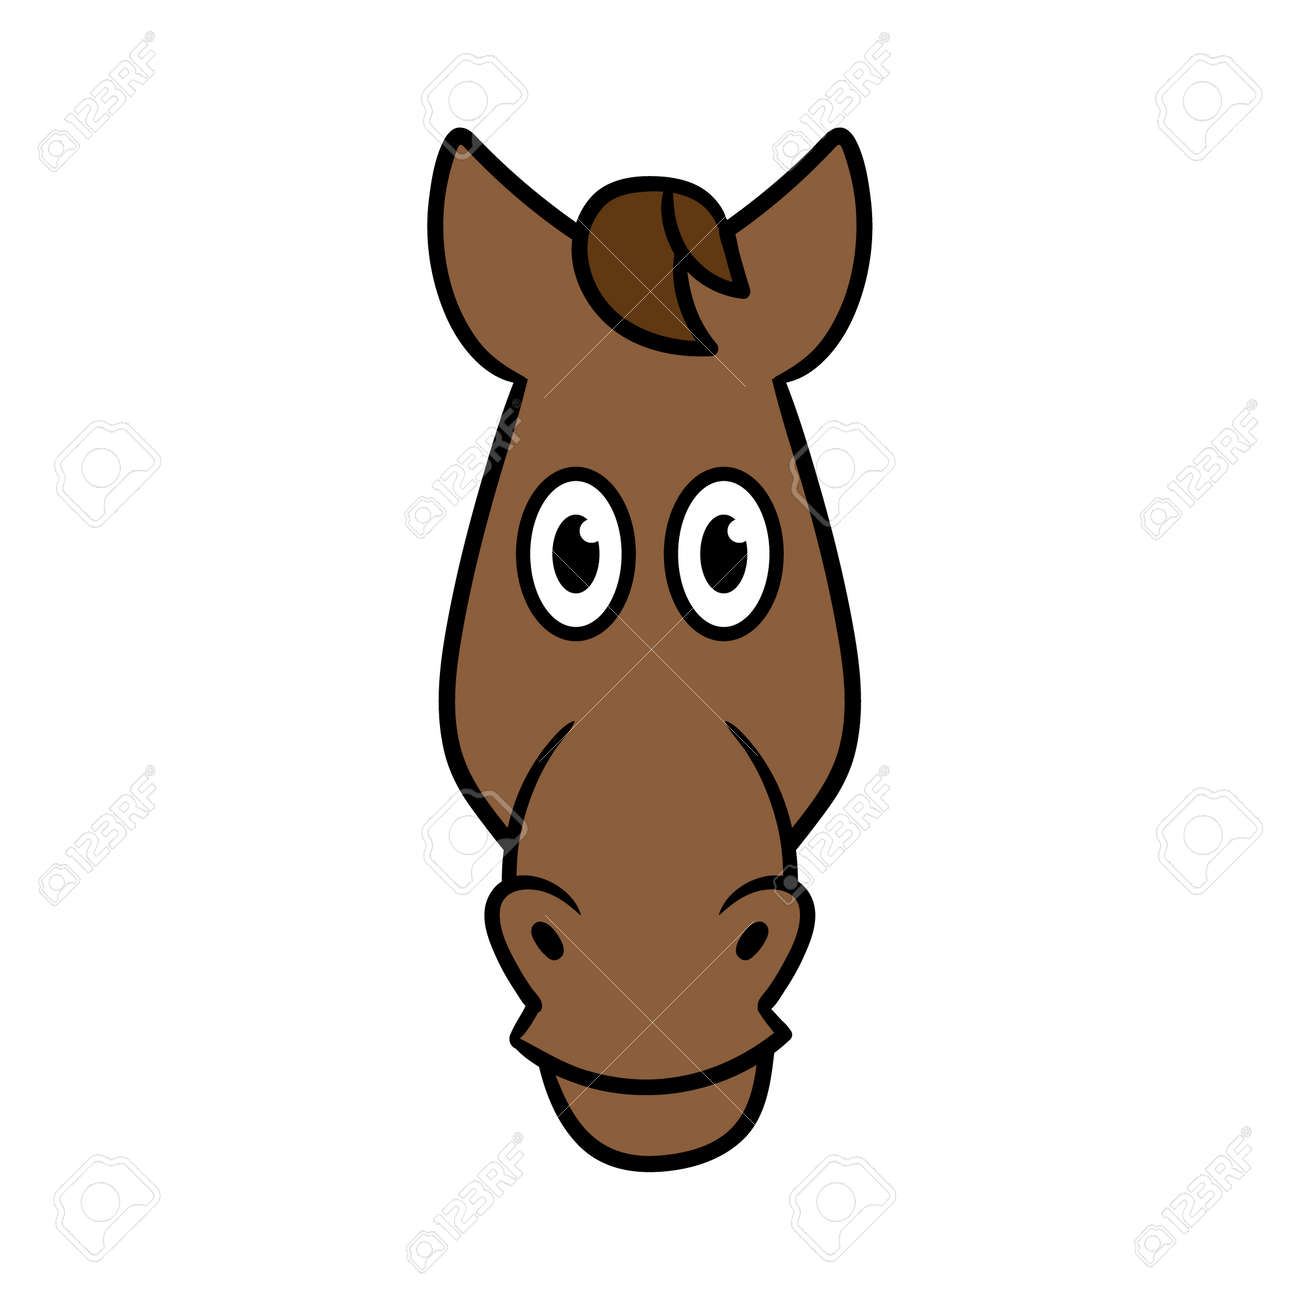 Cartoon Horse Head Illustration Royalty Free Cliparts Vectors And Stock Illustration Image 72412712